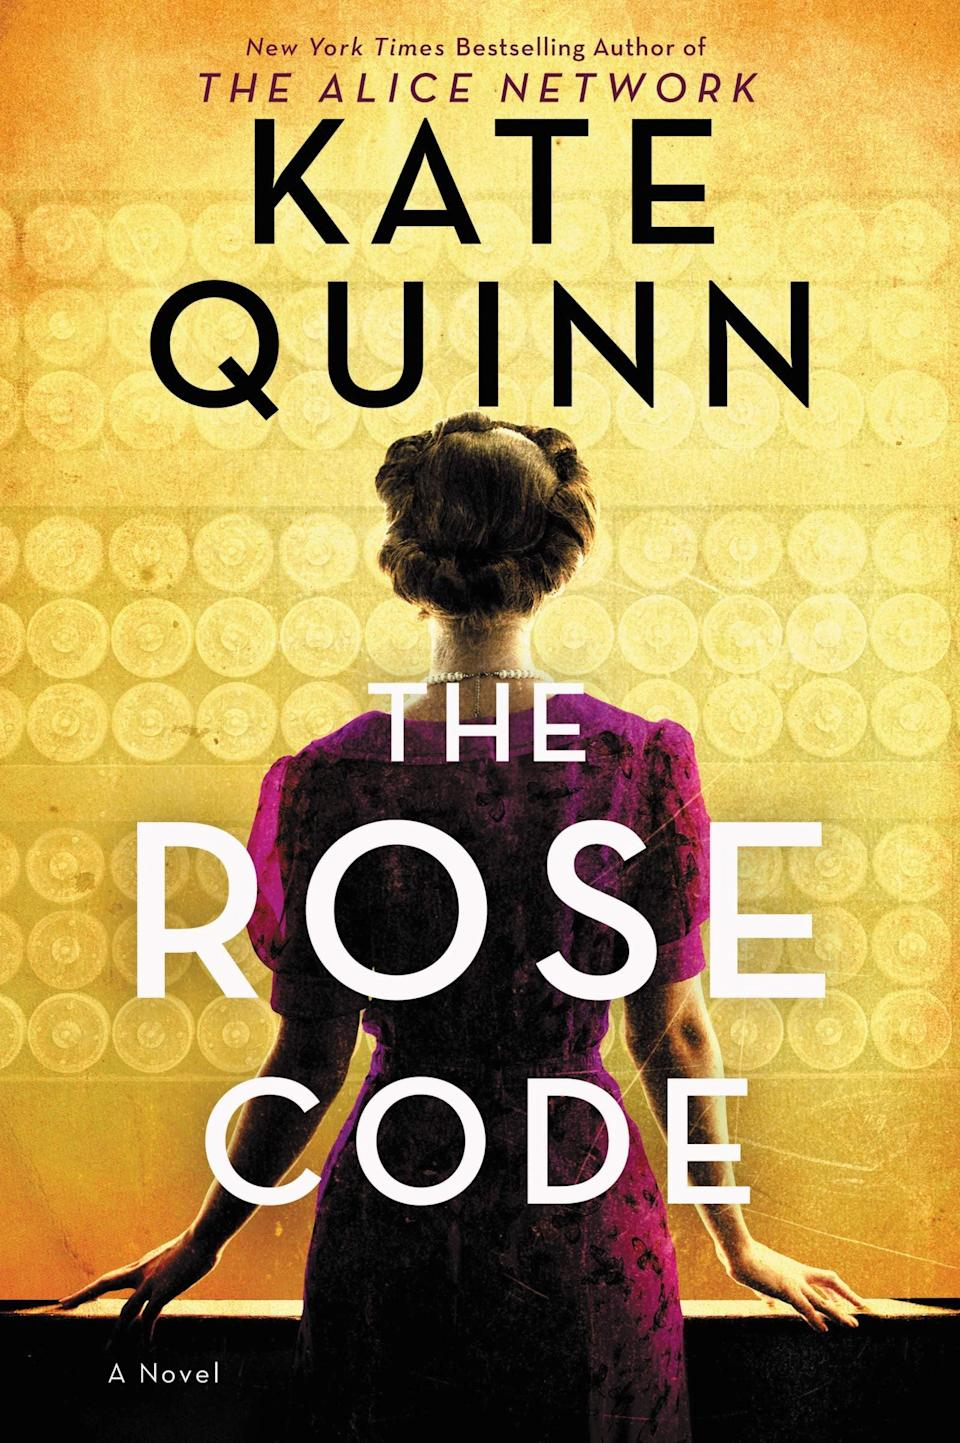 <p>Kate Quinn's latest World War II-era novel, <span><strong>The Rose Code</strong></span>, follows three women code breakers during and after the war. Osla, Mab, and Beth are as different as can be, but together, they make an unstoppable team. Due to a falling out, the women drift apart after the war, but when a spy needs catching, the trio will reunite for the sake of their country. </p> <p><em>Out March 9</em></p>